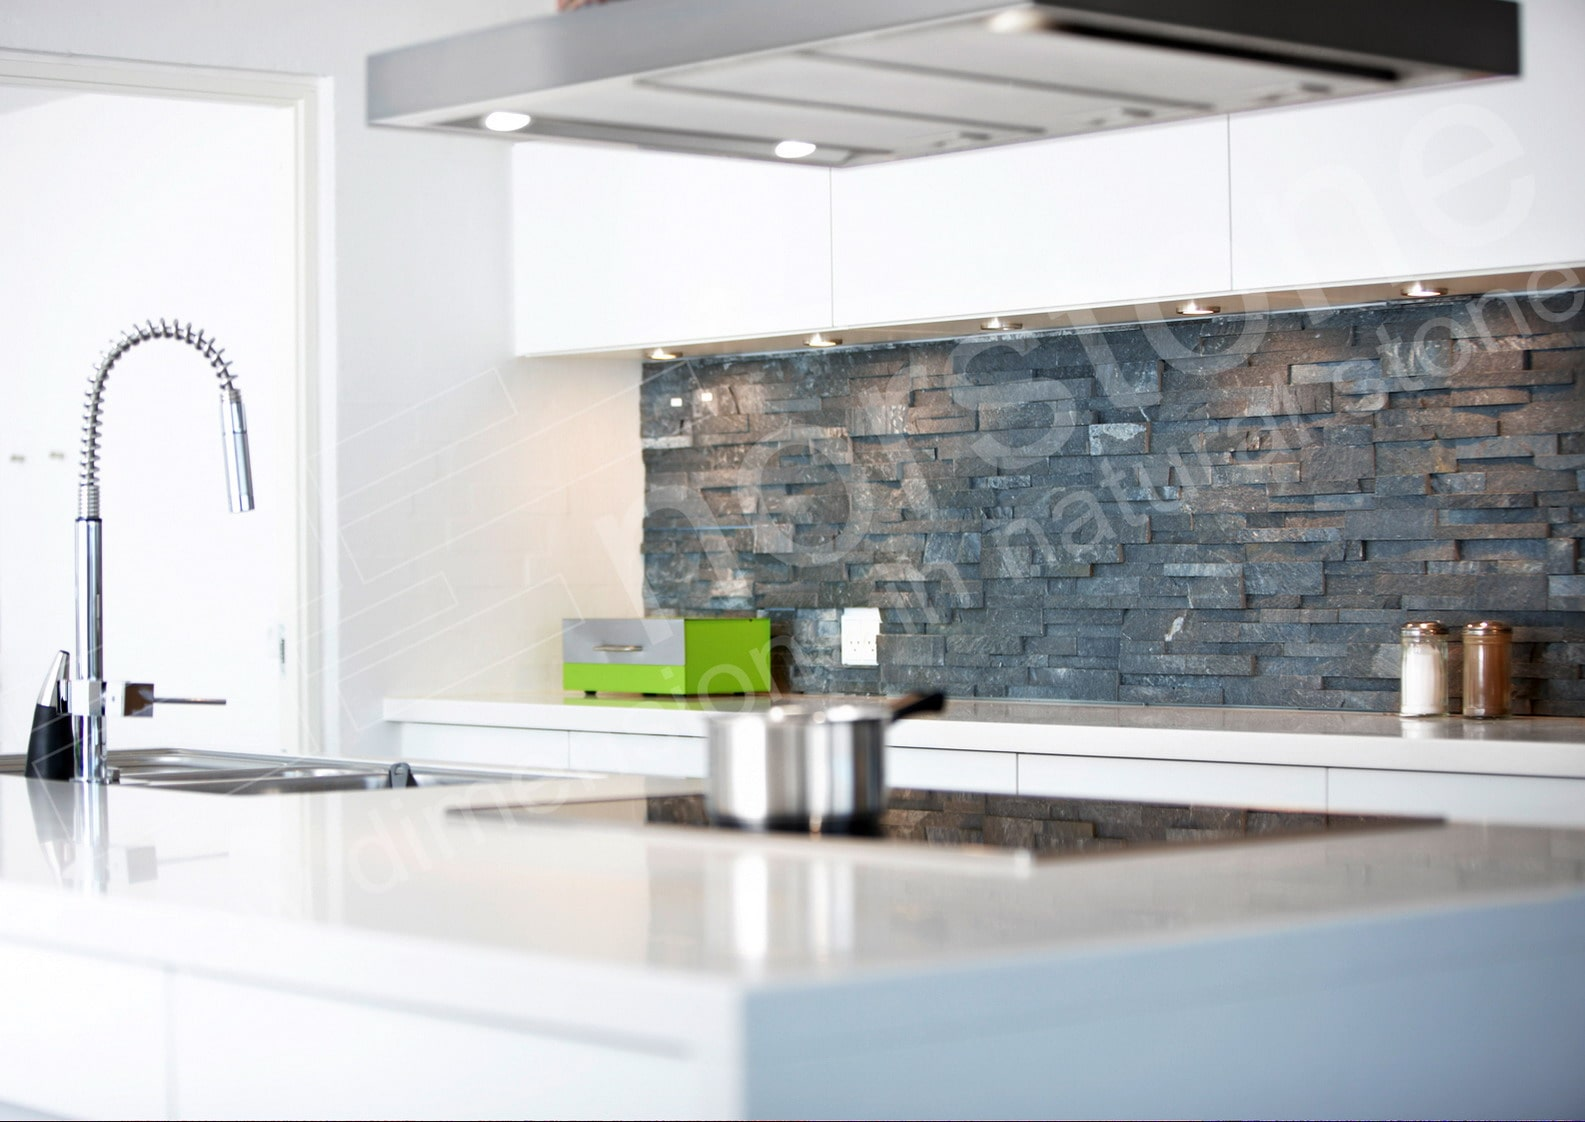 Norstone Charcoal Rock Panels installed on cement board over existing drywall on a modern kitchen backsplash